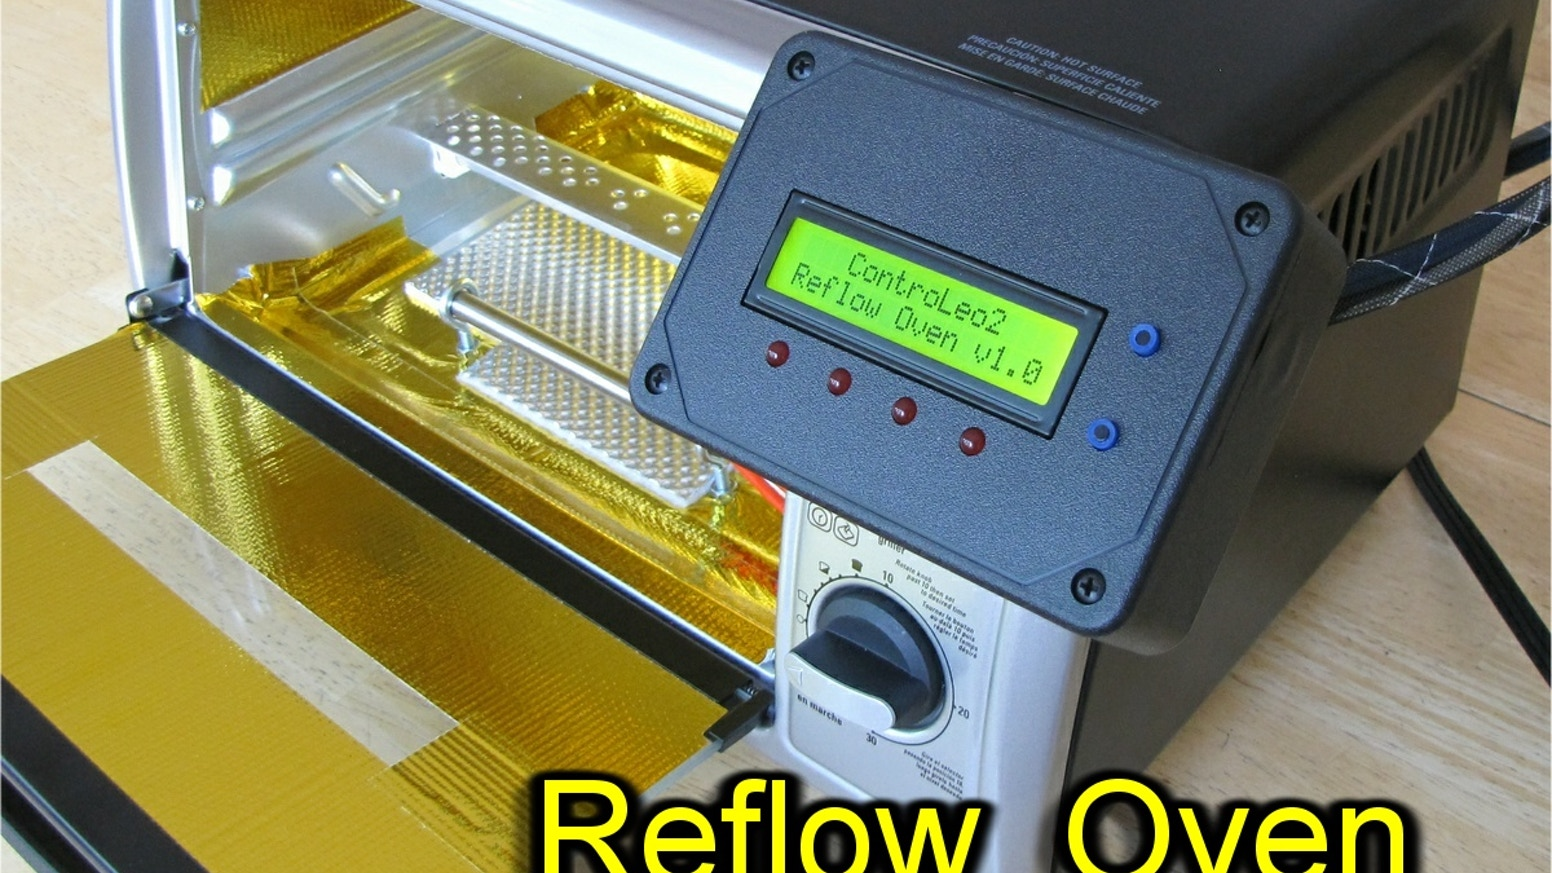 Low-cost, high quality reflow oven for surface-mount PCB assembly at home.  Get professional results consistently and reliably!